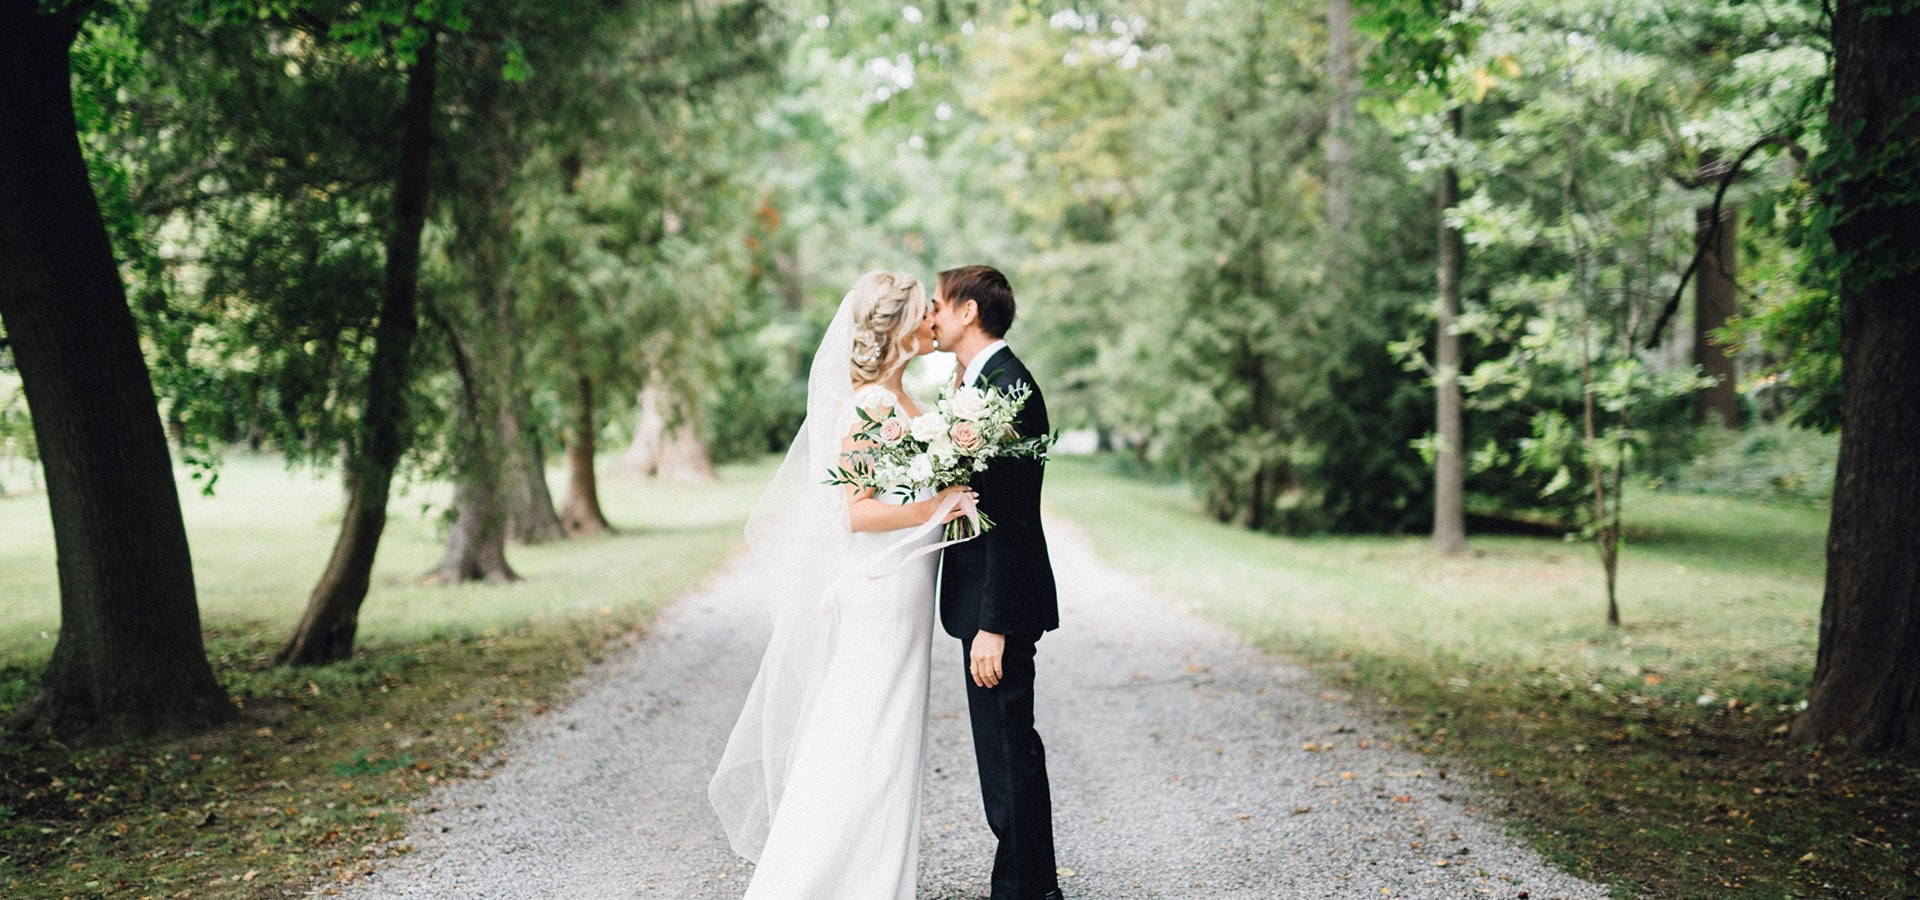 Hero image for Lauren and Chris' Niagara-on-the-Lake Wedding at Kurtz Orchards